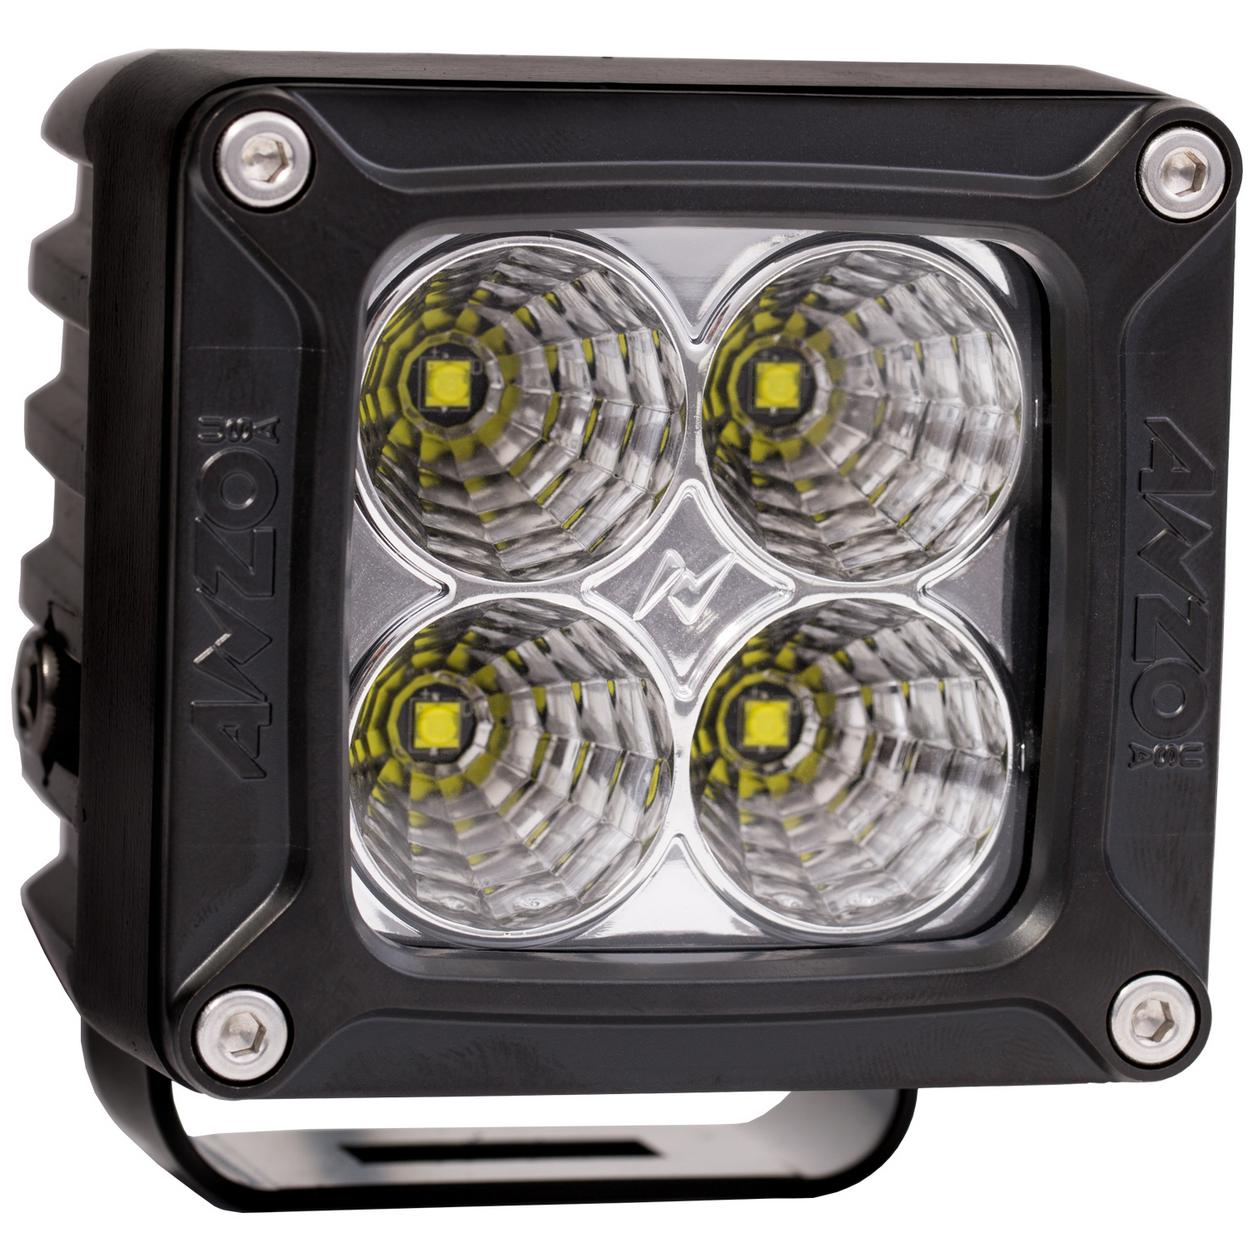 ANZO USA 881052 Rugged Vision Off Road LED Flood Light